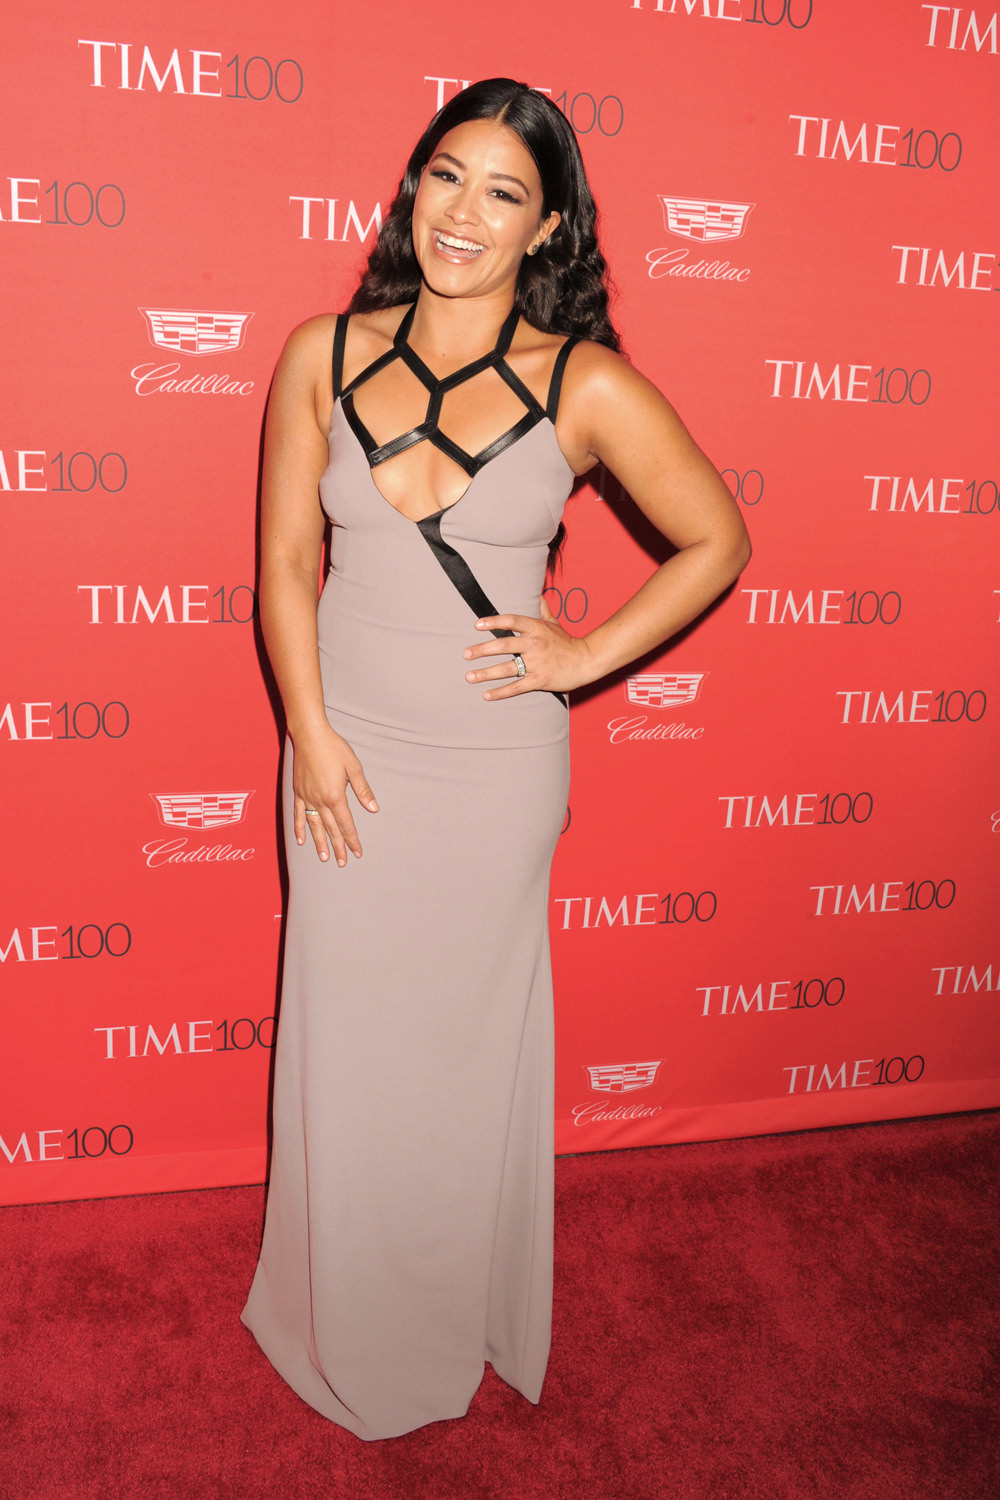 Gina-Rodriguez-2016-Time-Gala-Red-Carpet-Fashion-Bibhu-Mohapatra-Tom-Lorenzo-Site-1.jpg